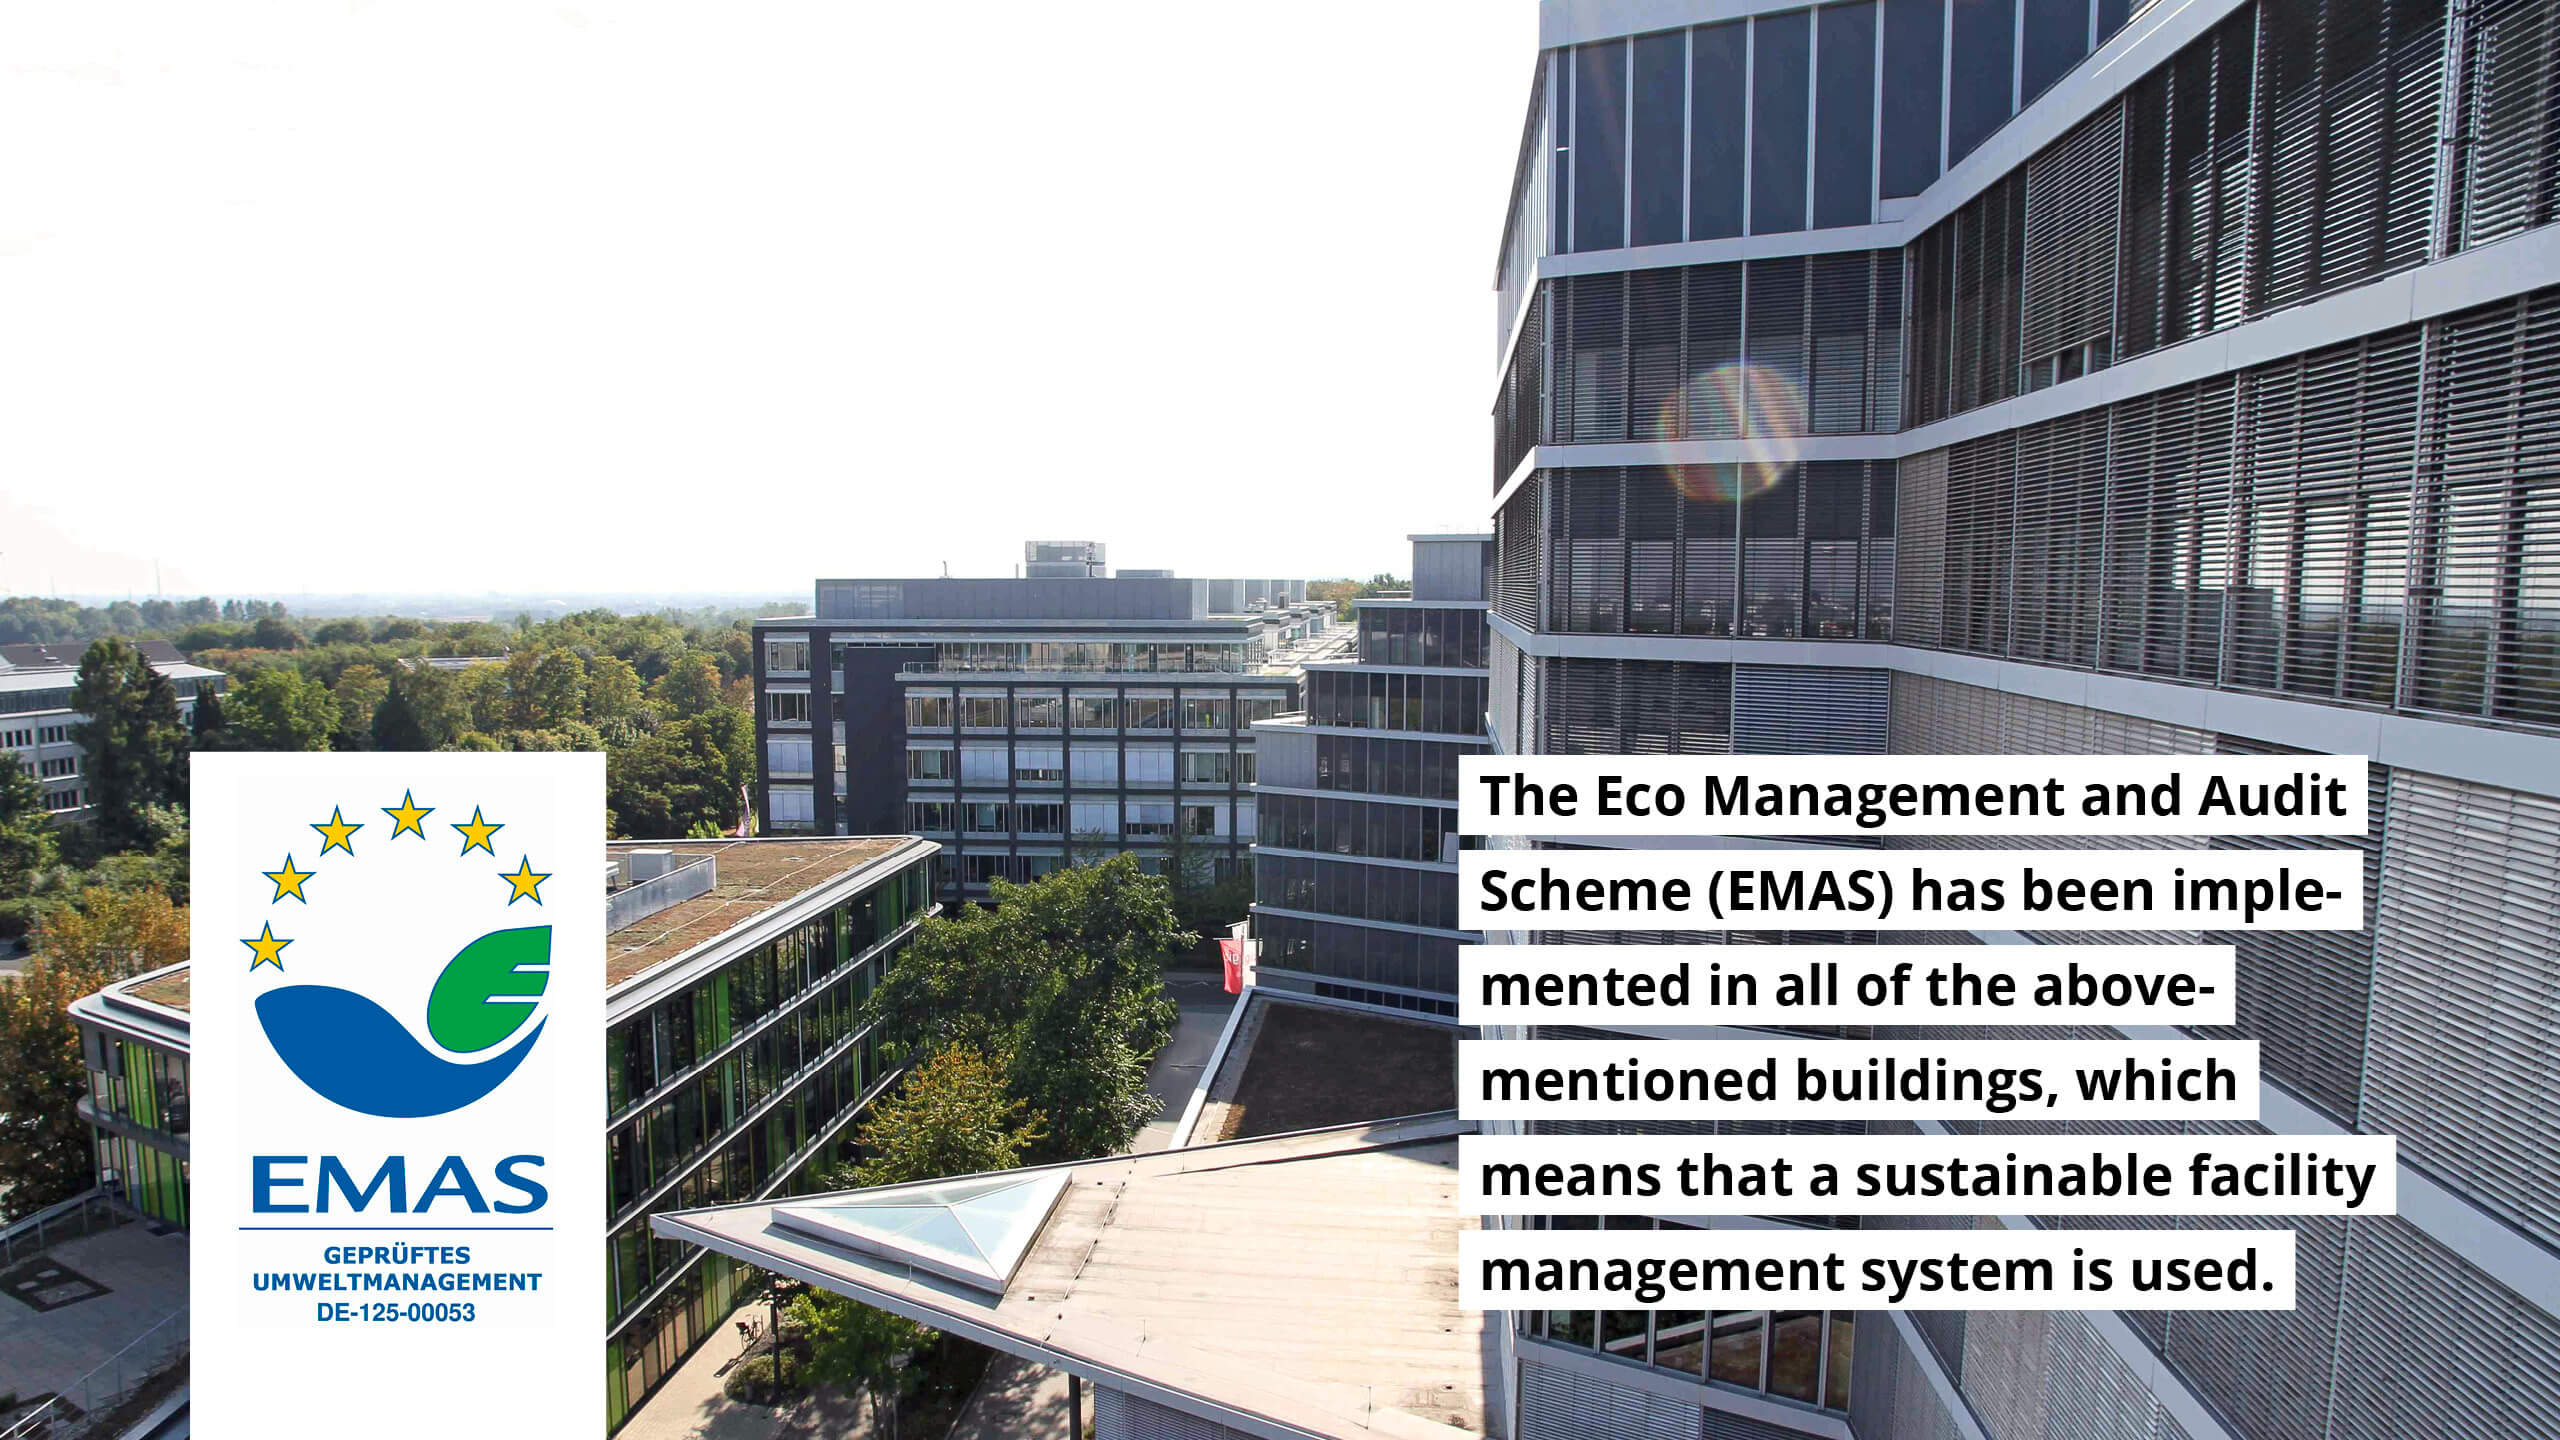 EMAS has been implemented in all of the above-mentioned buildings, which means that a sustainable facility management system is used.